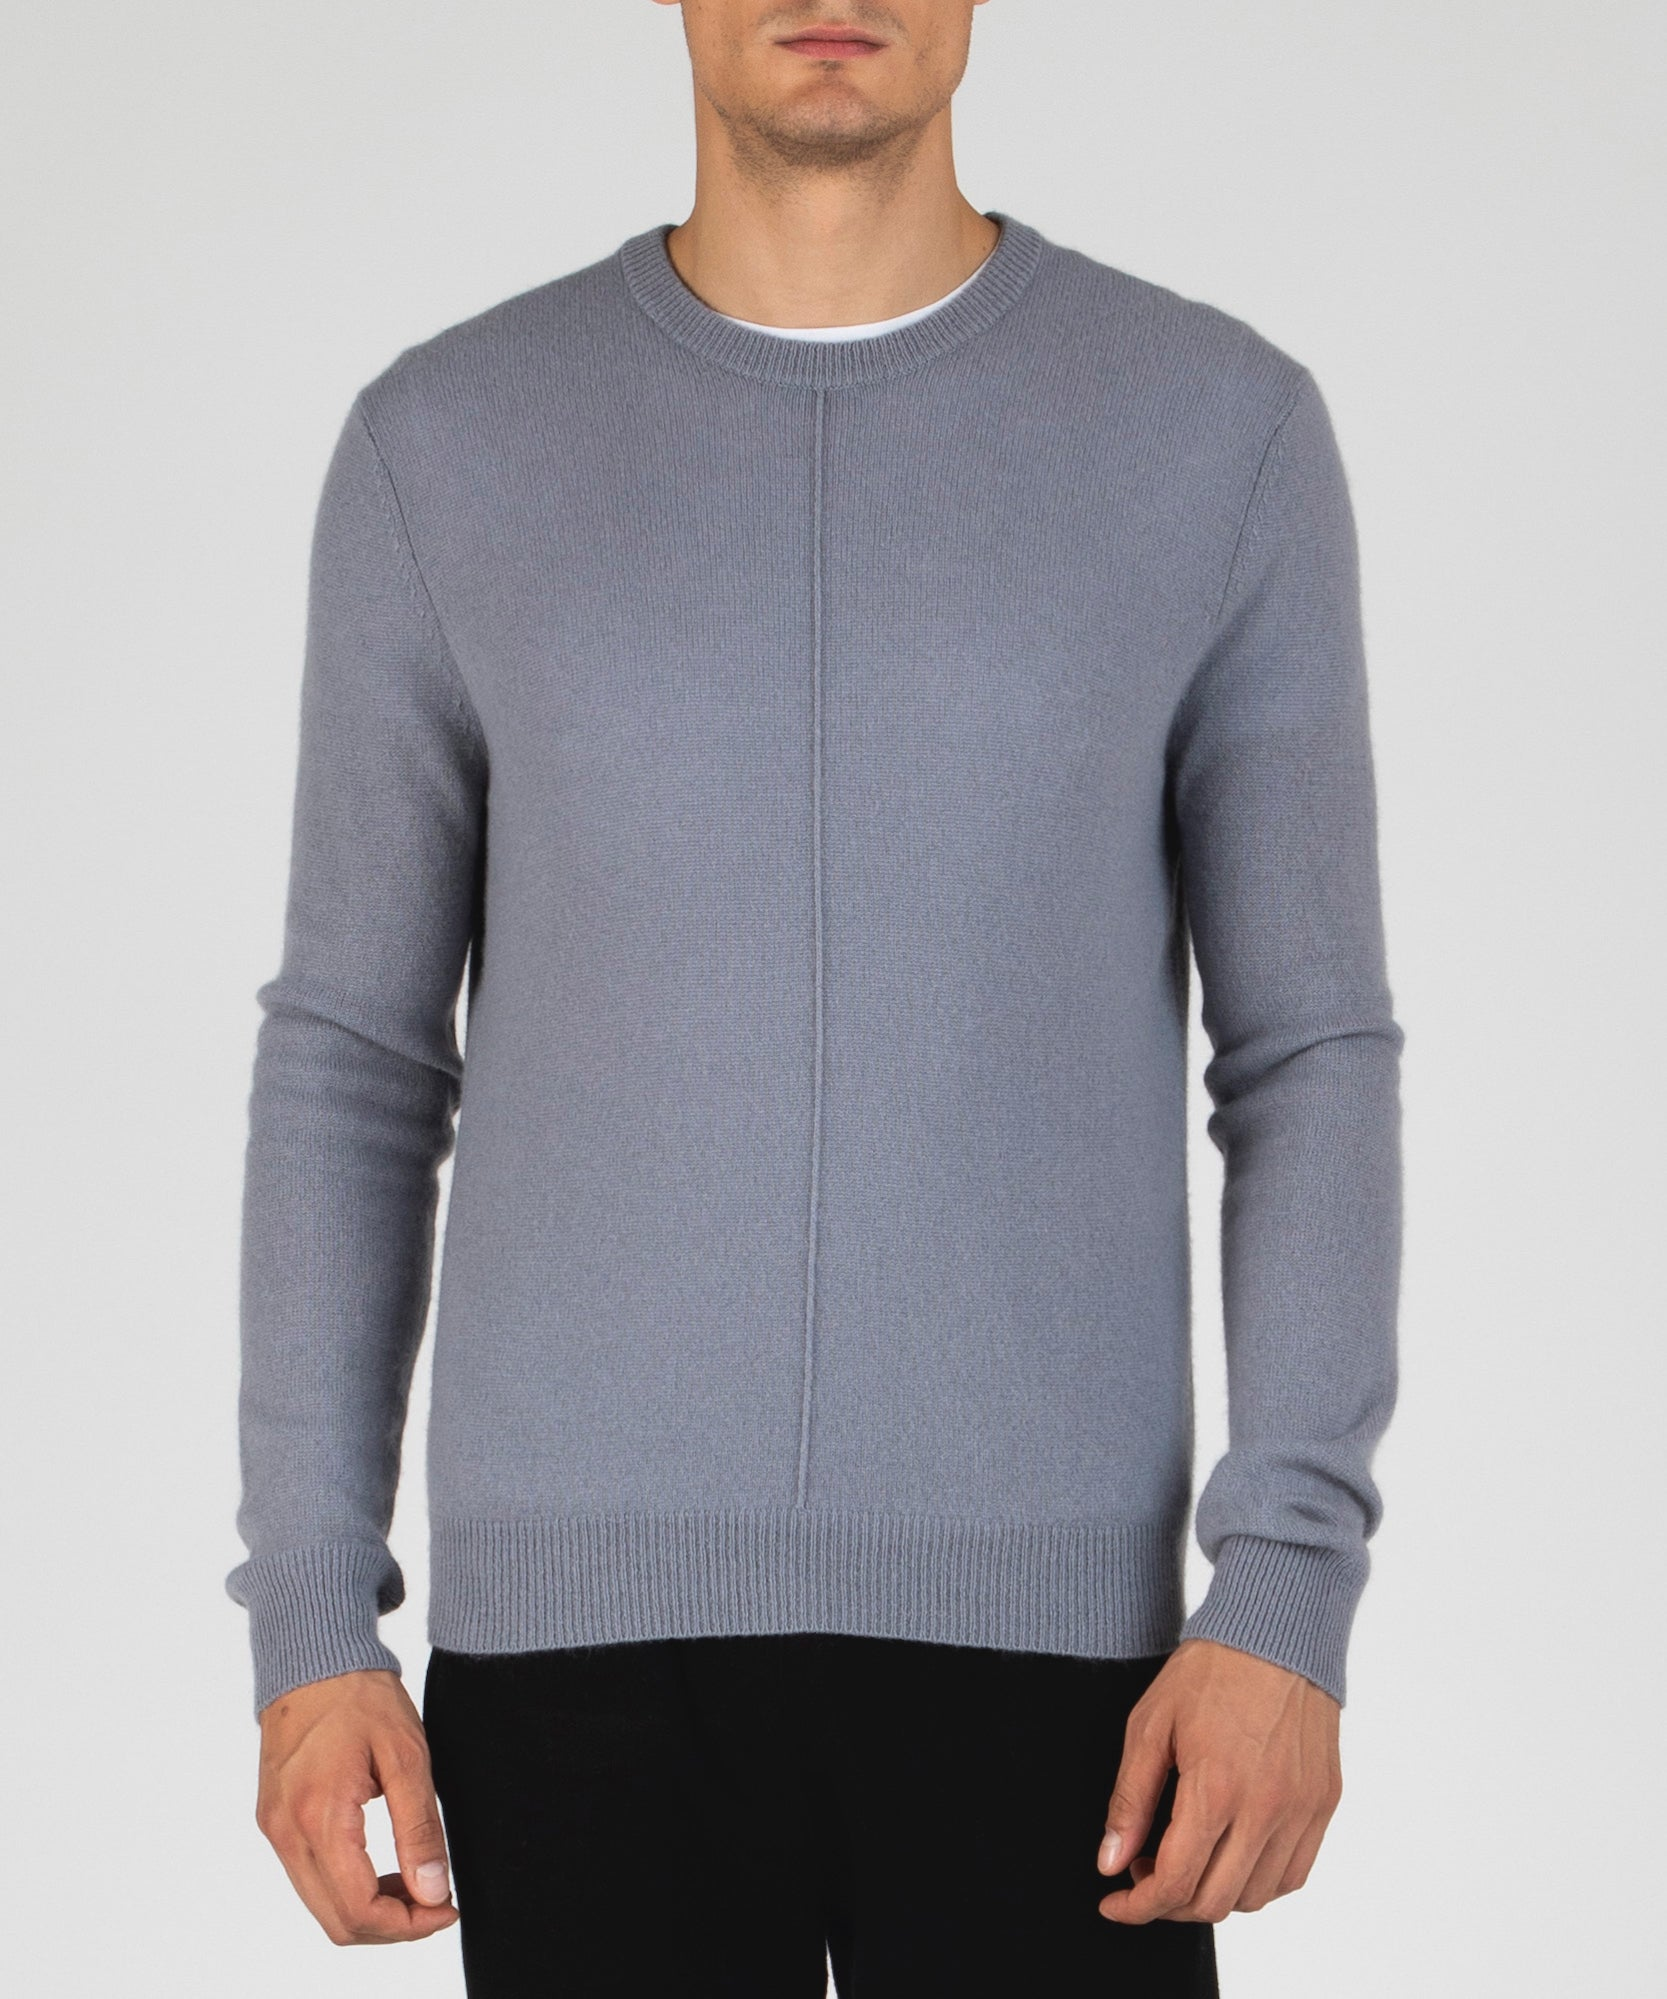 Fossil Cashmere Exposed Seam Crew Neck Sweater - Men's Luxe Cashmere Sweaters by ATM Anthony Thomas Melillo